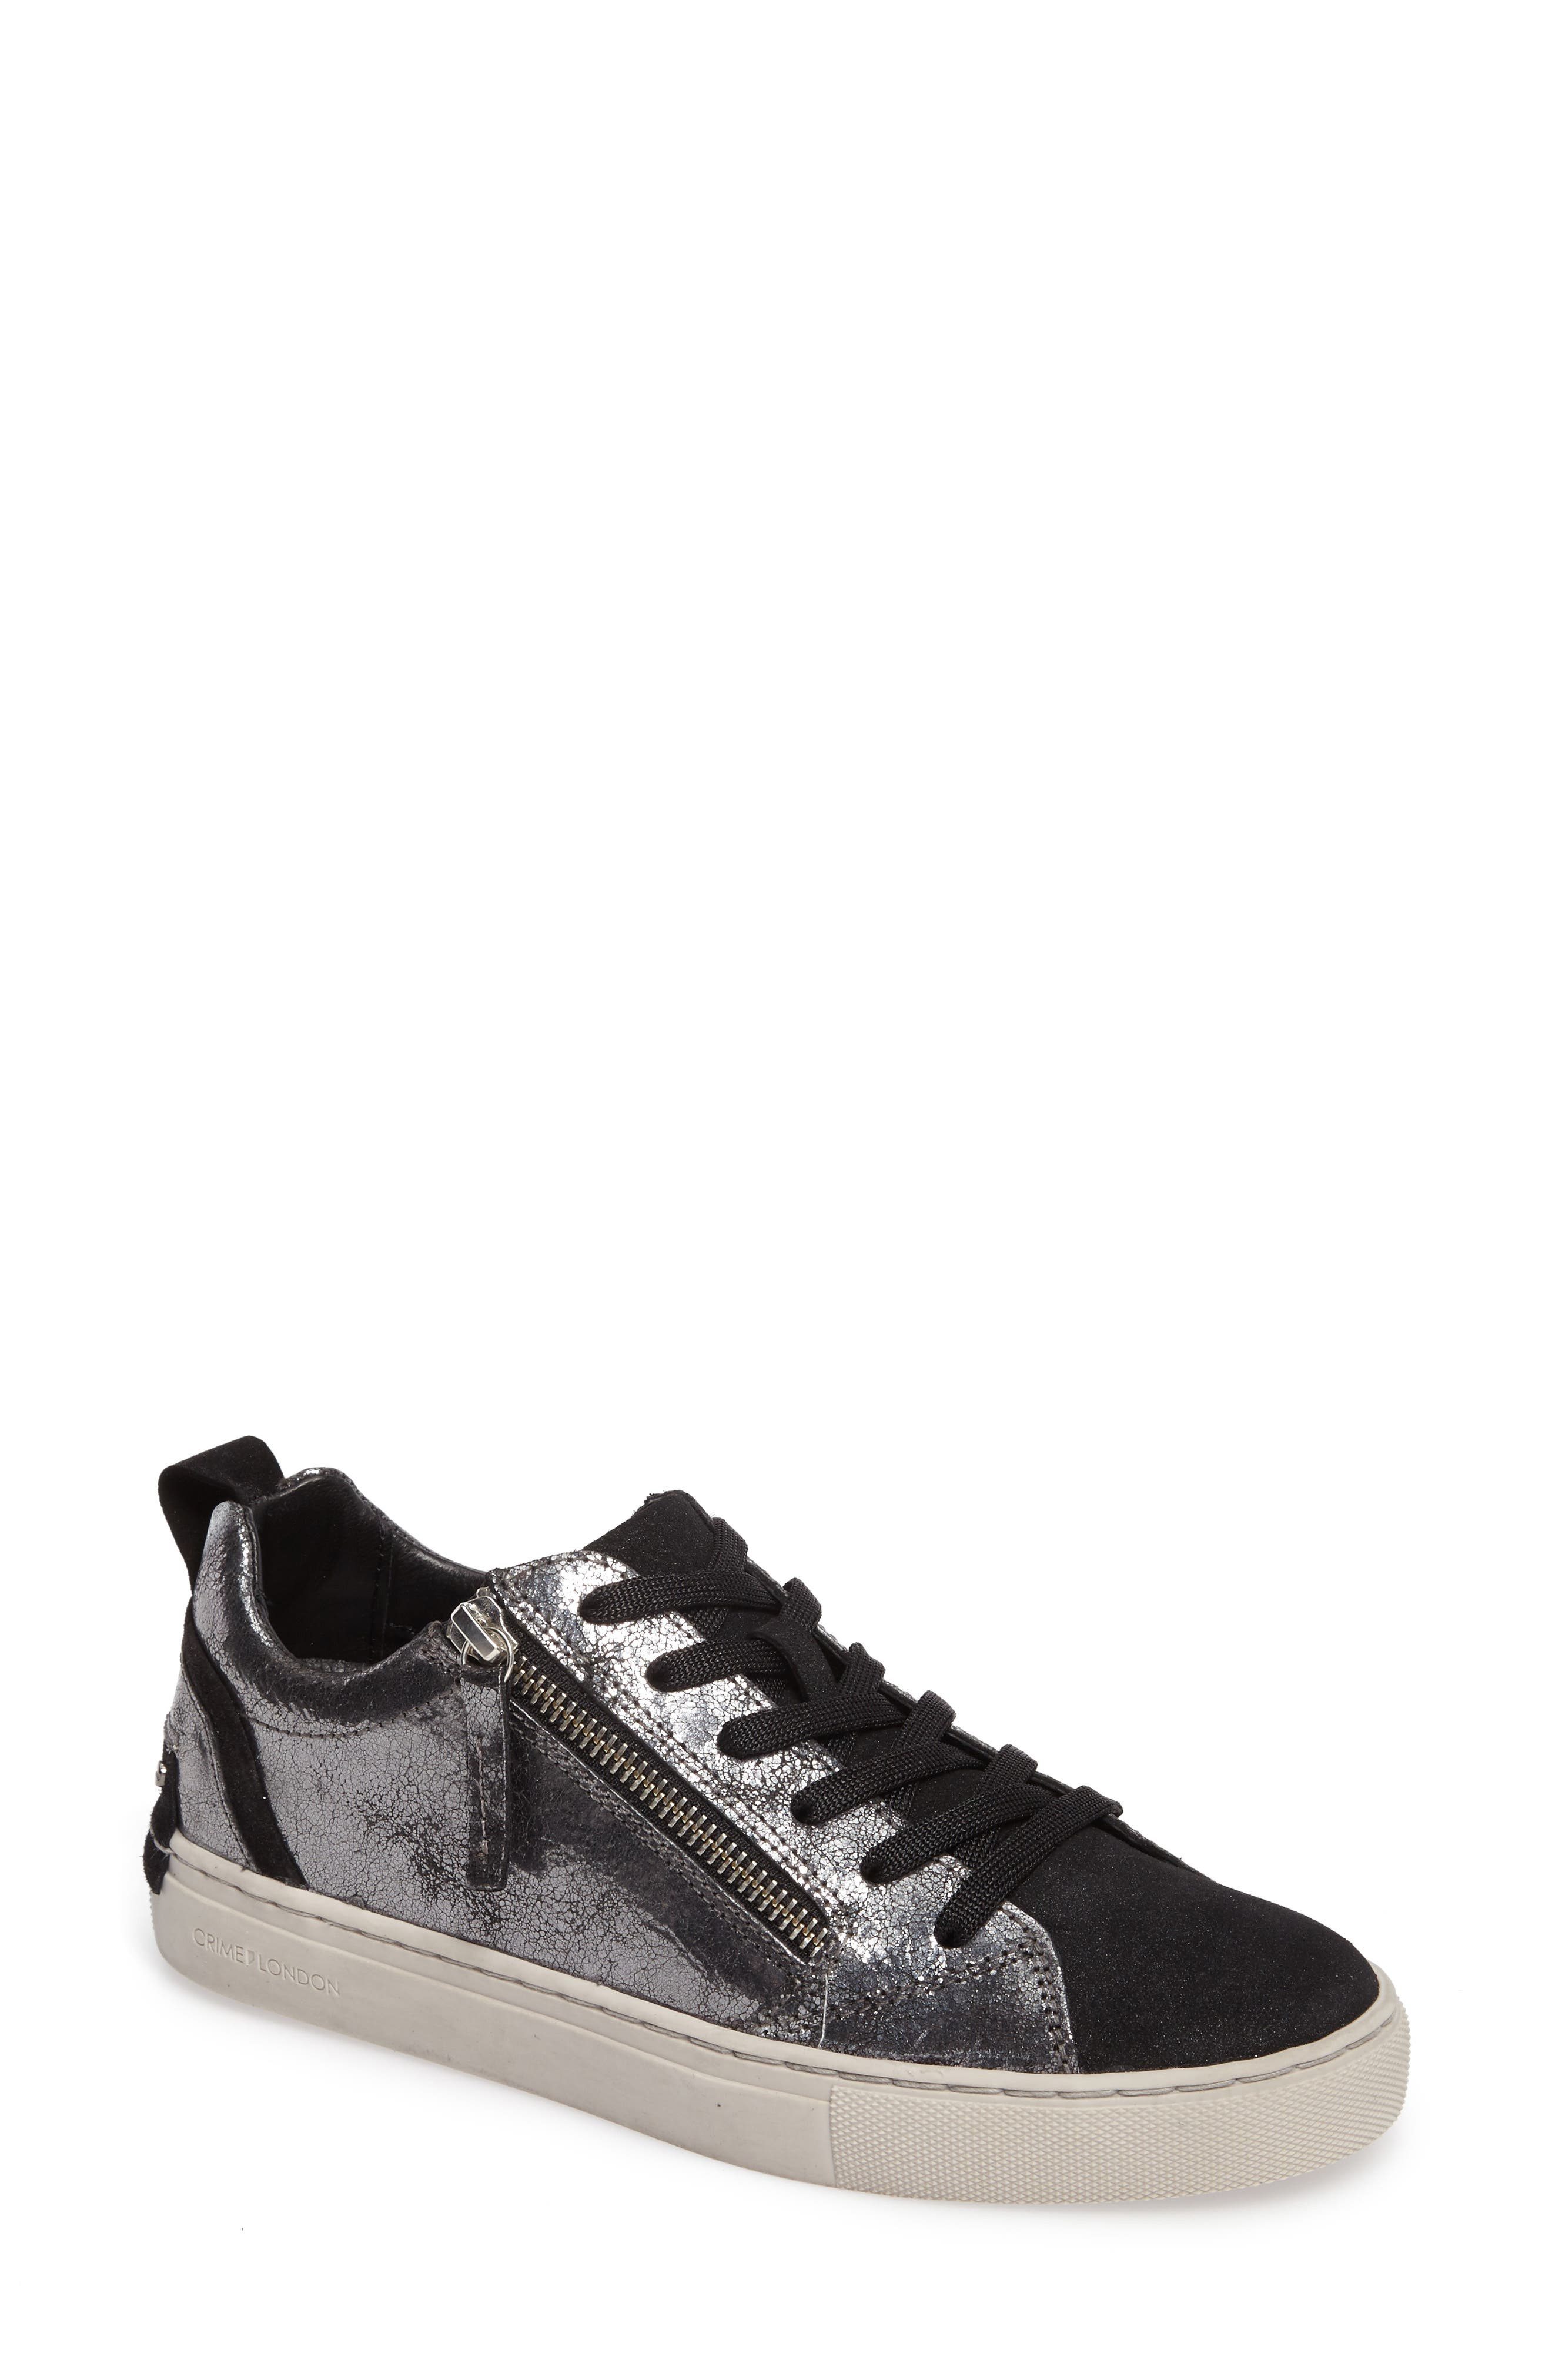 Java Lo Sneaker,                             Main thumbnail 1, color,                             Pewter - 25